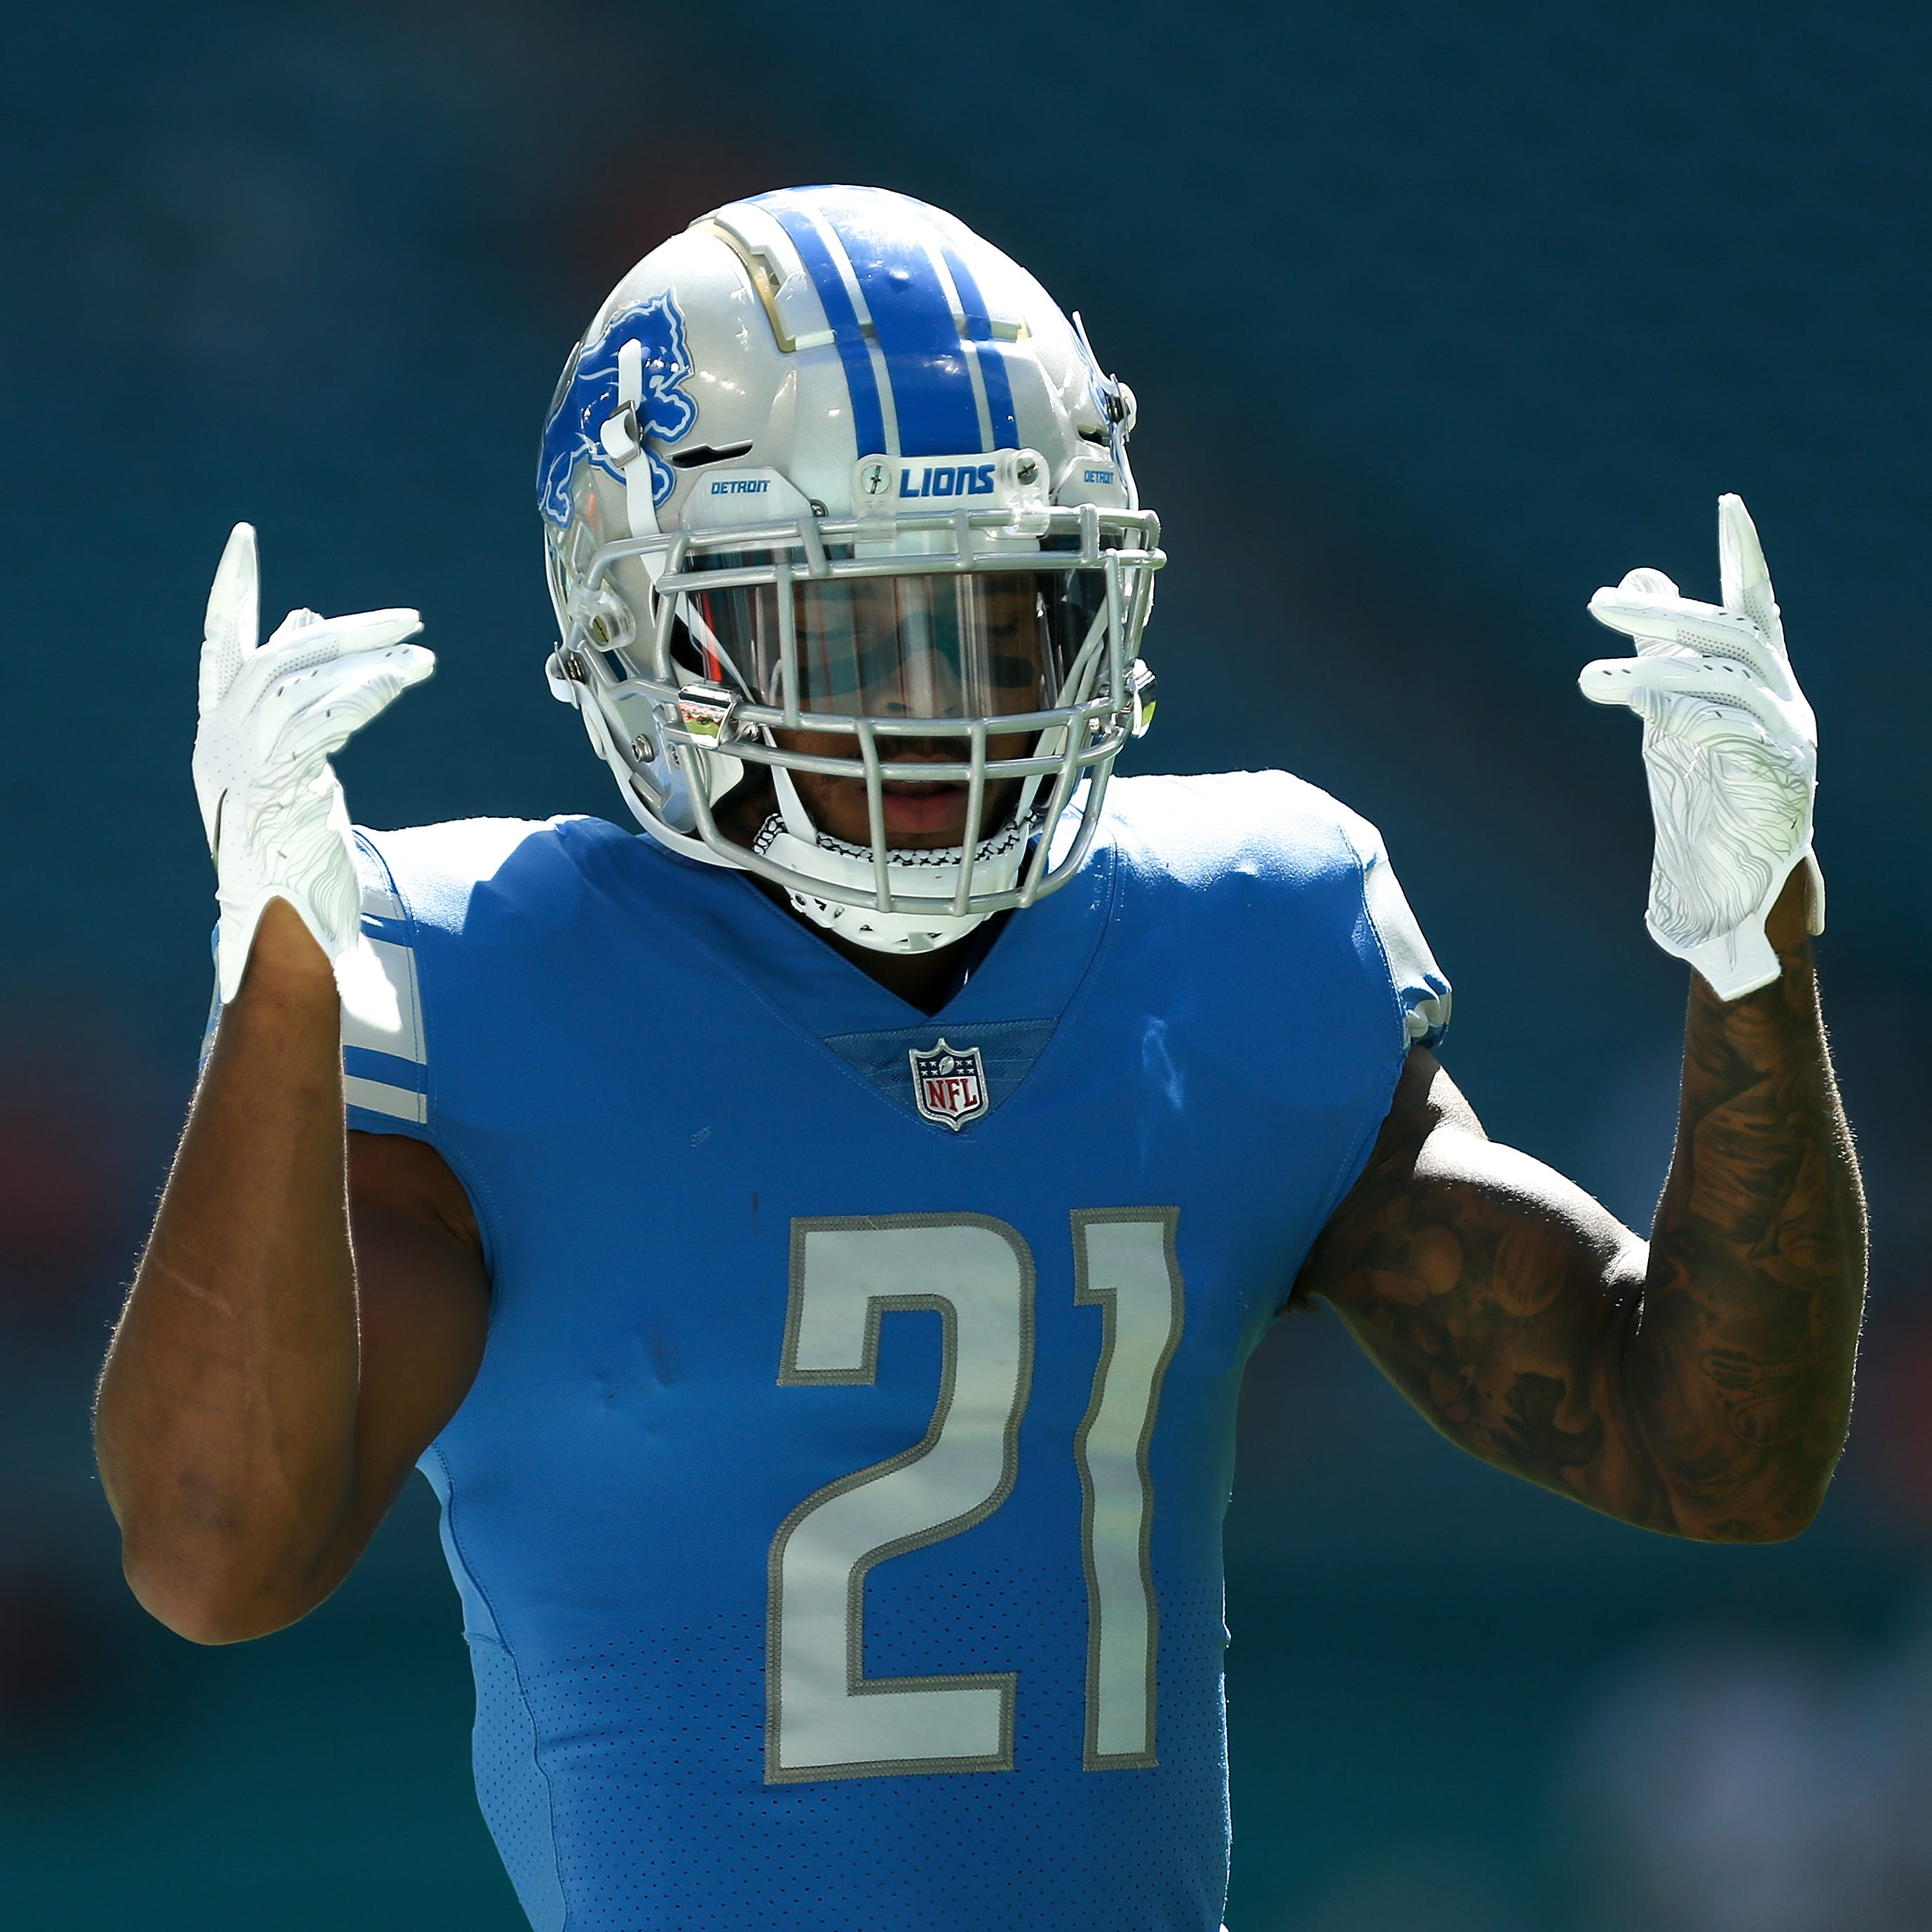 Detroit Lions could use DT at NFL trade deadline, but not desperately so